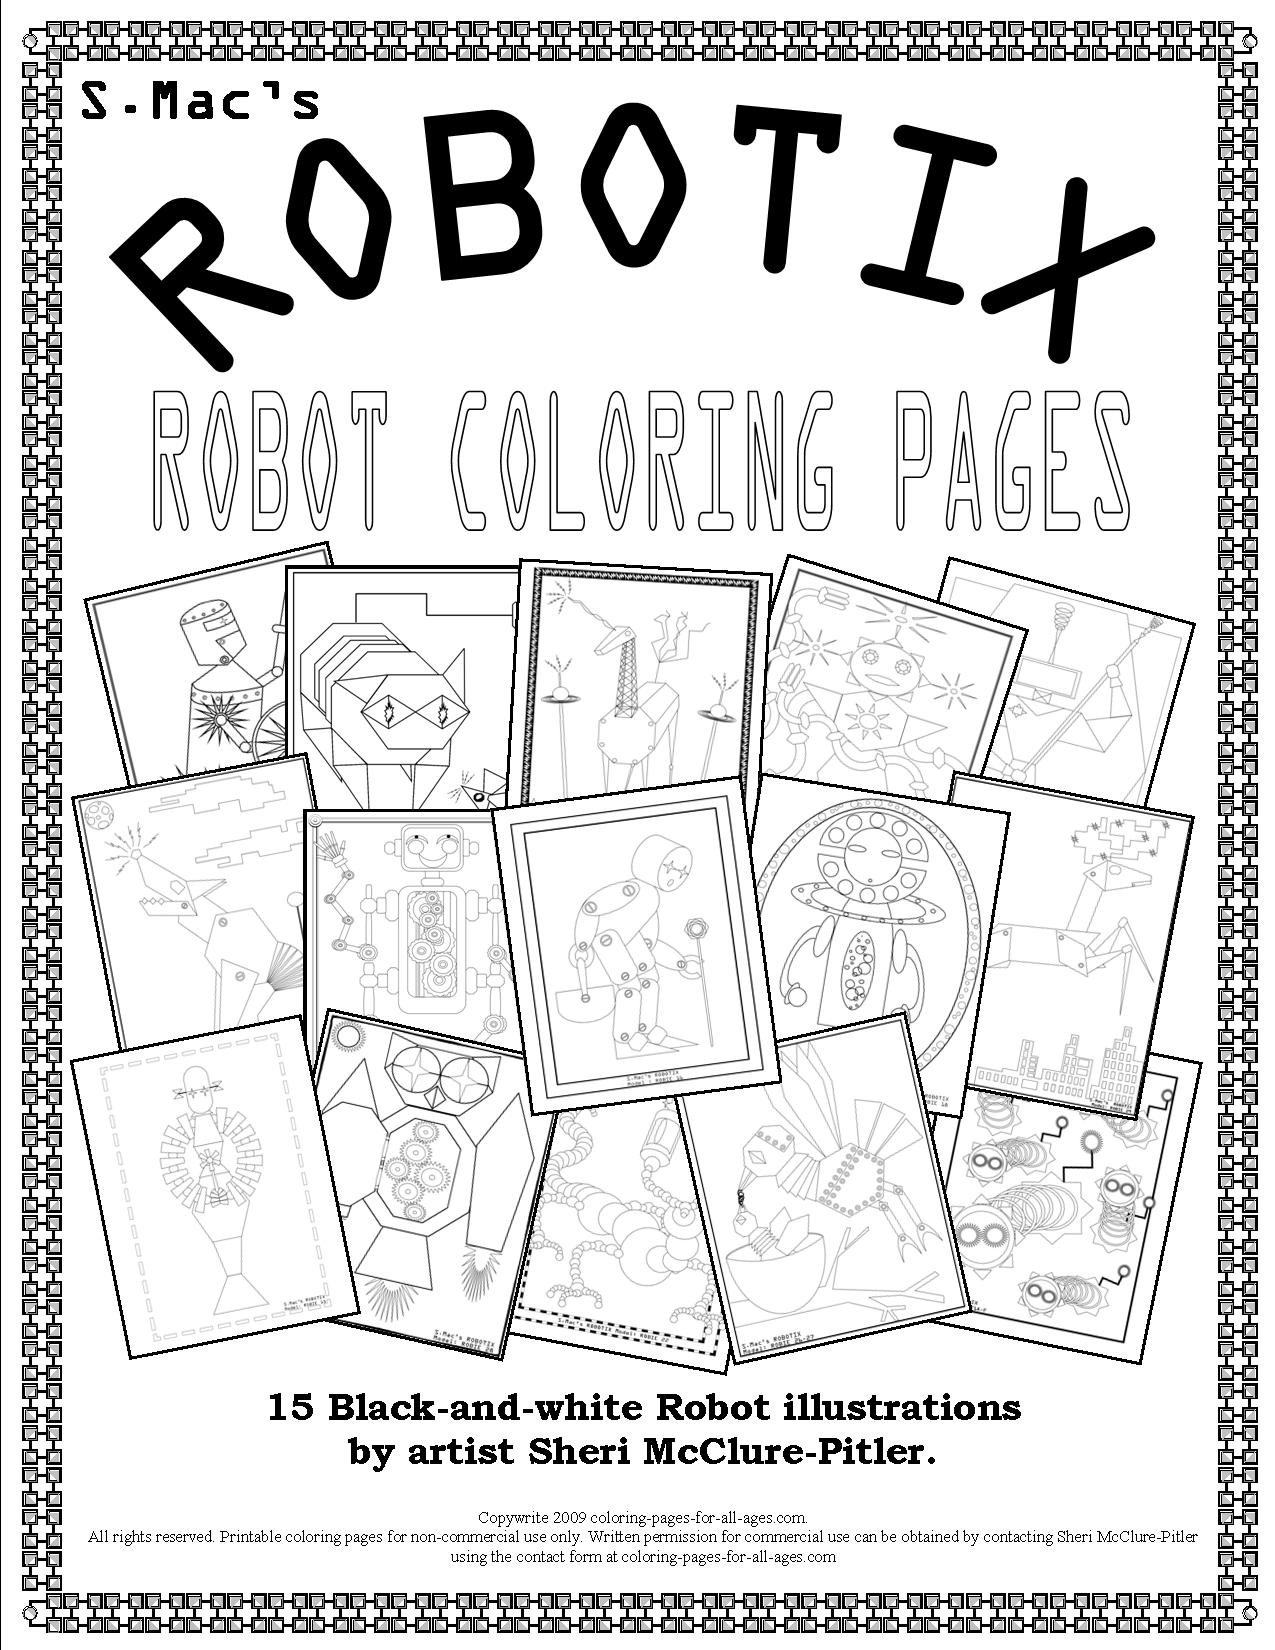 Christmas Robot Coloring Pages With S Mac ROBOTIX Downloadable Book